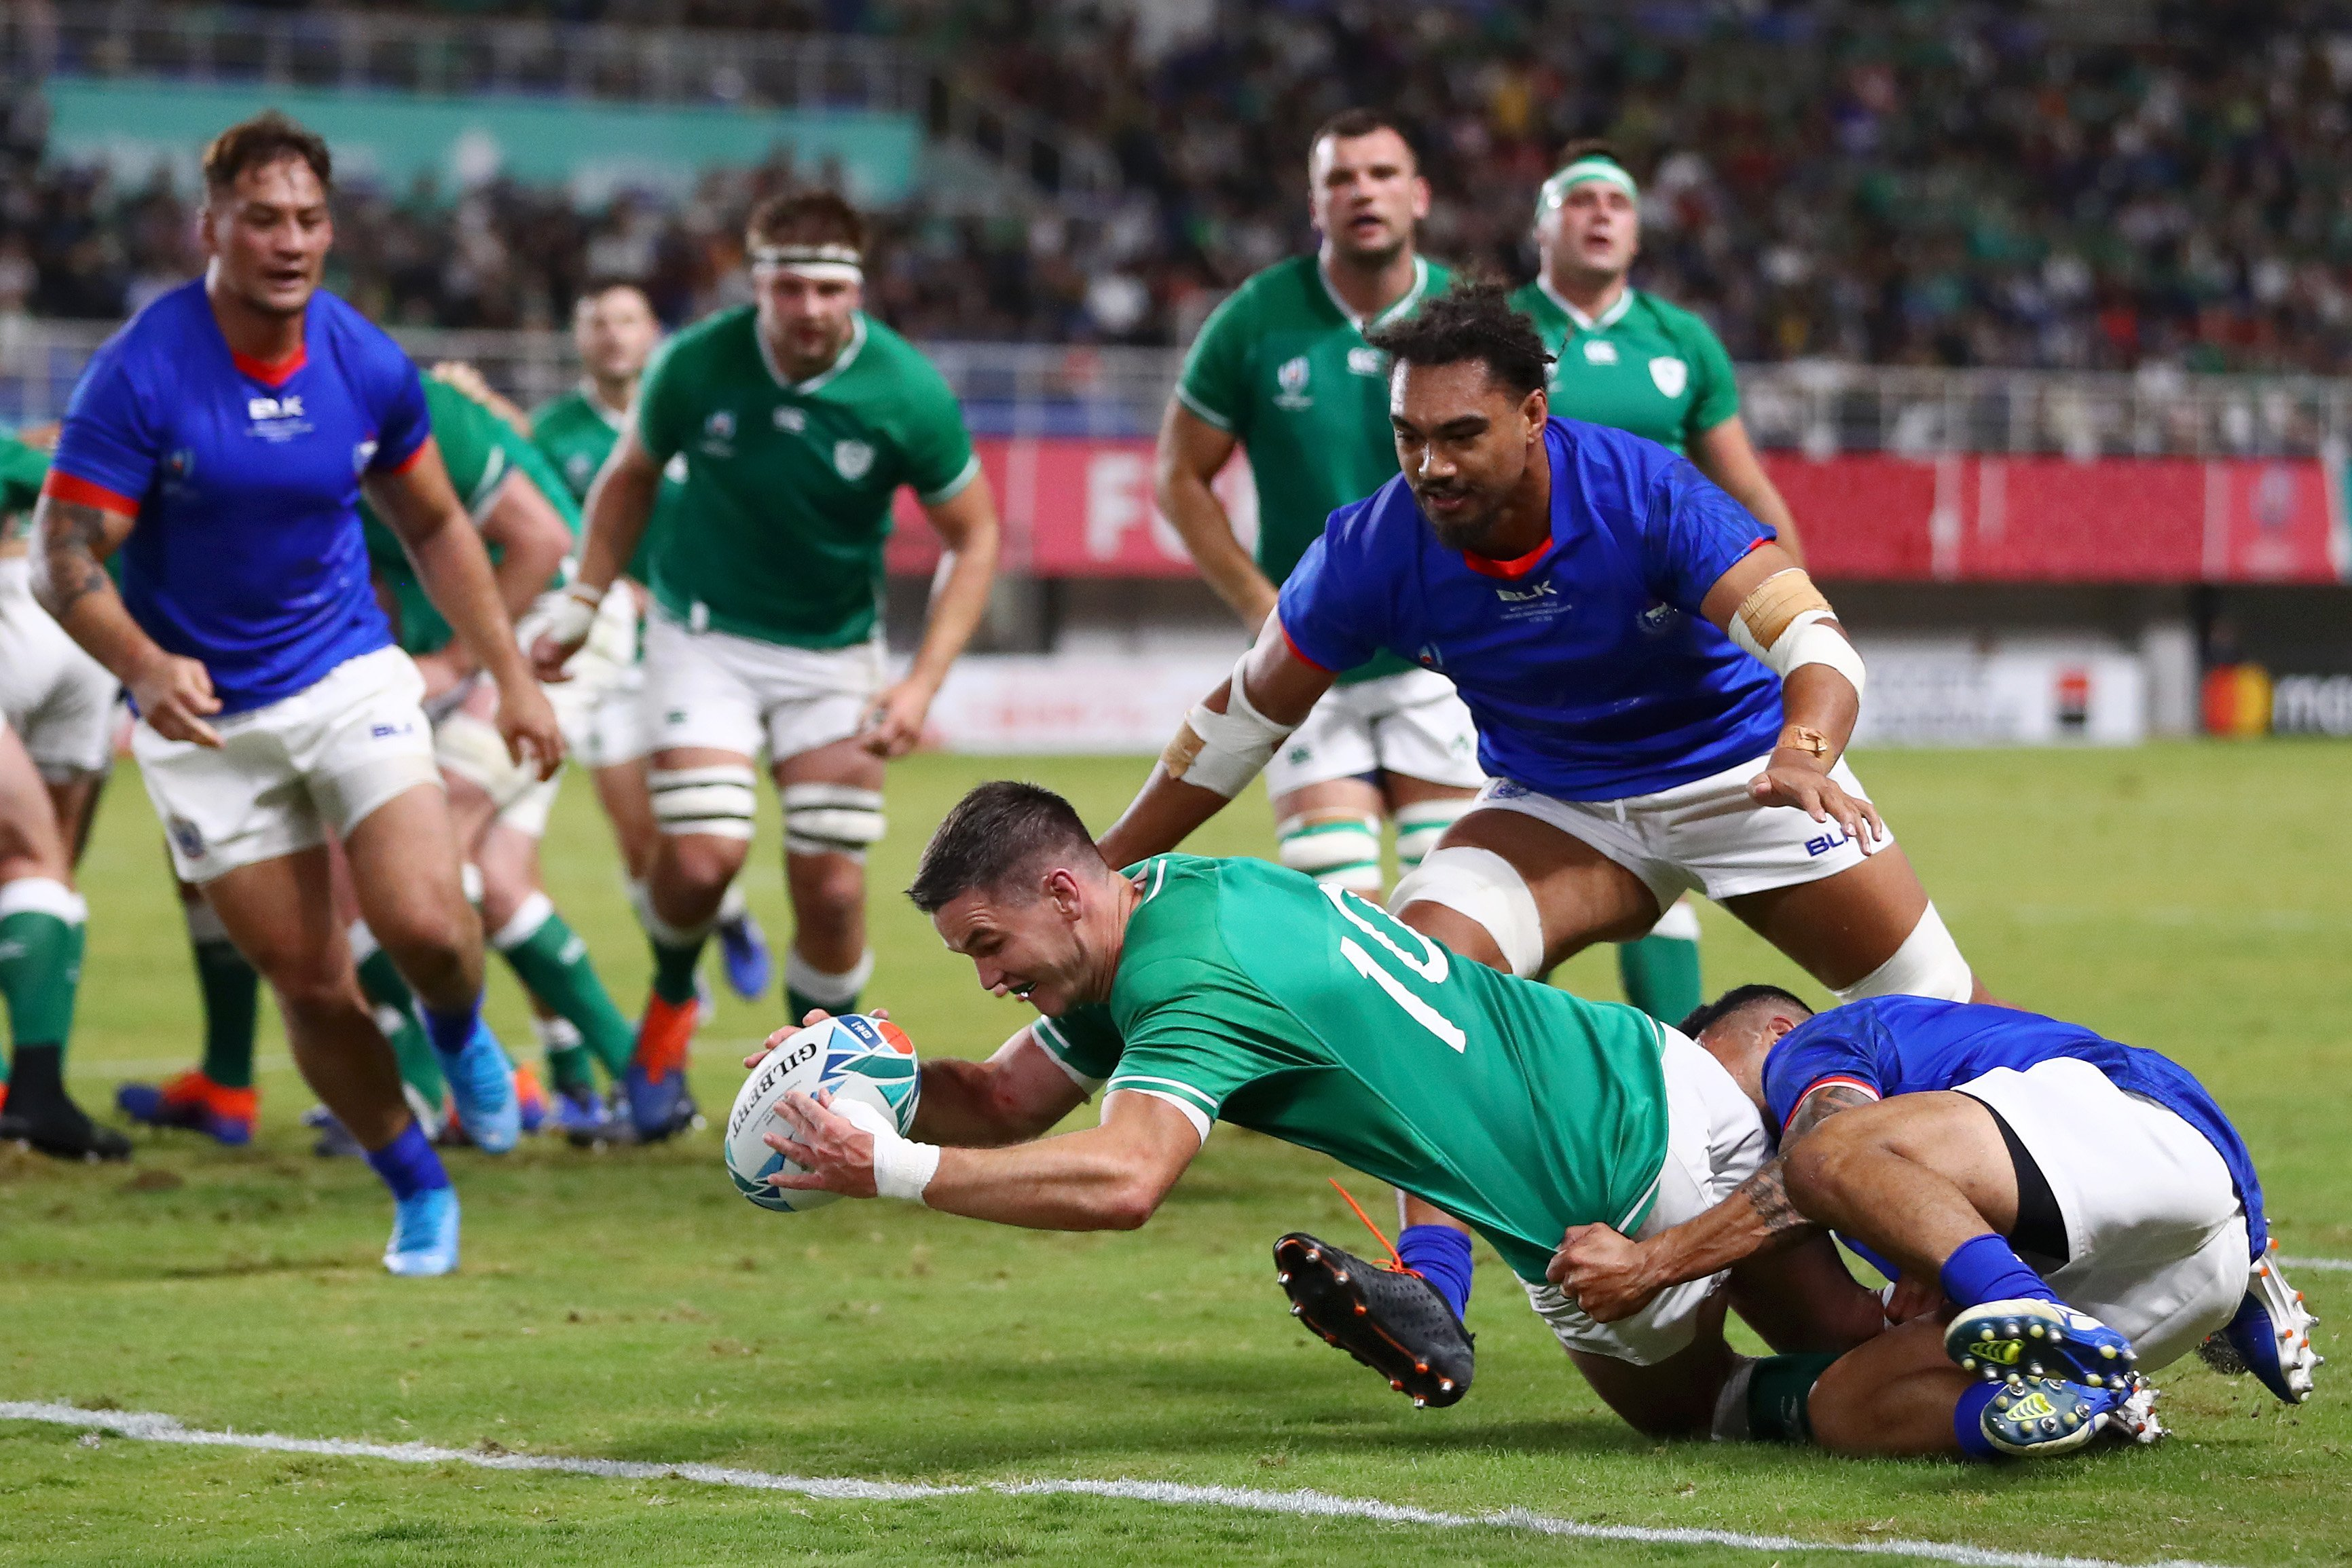 Ireland advances to quarterfinals at rugby's World Cup as Typhoon Hagibis batters host nation